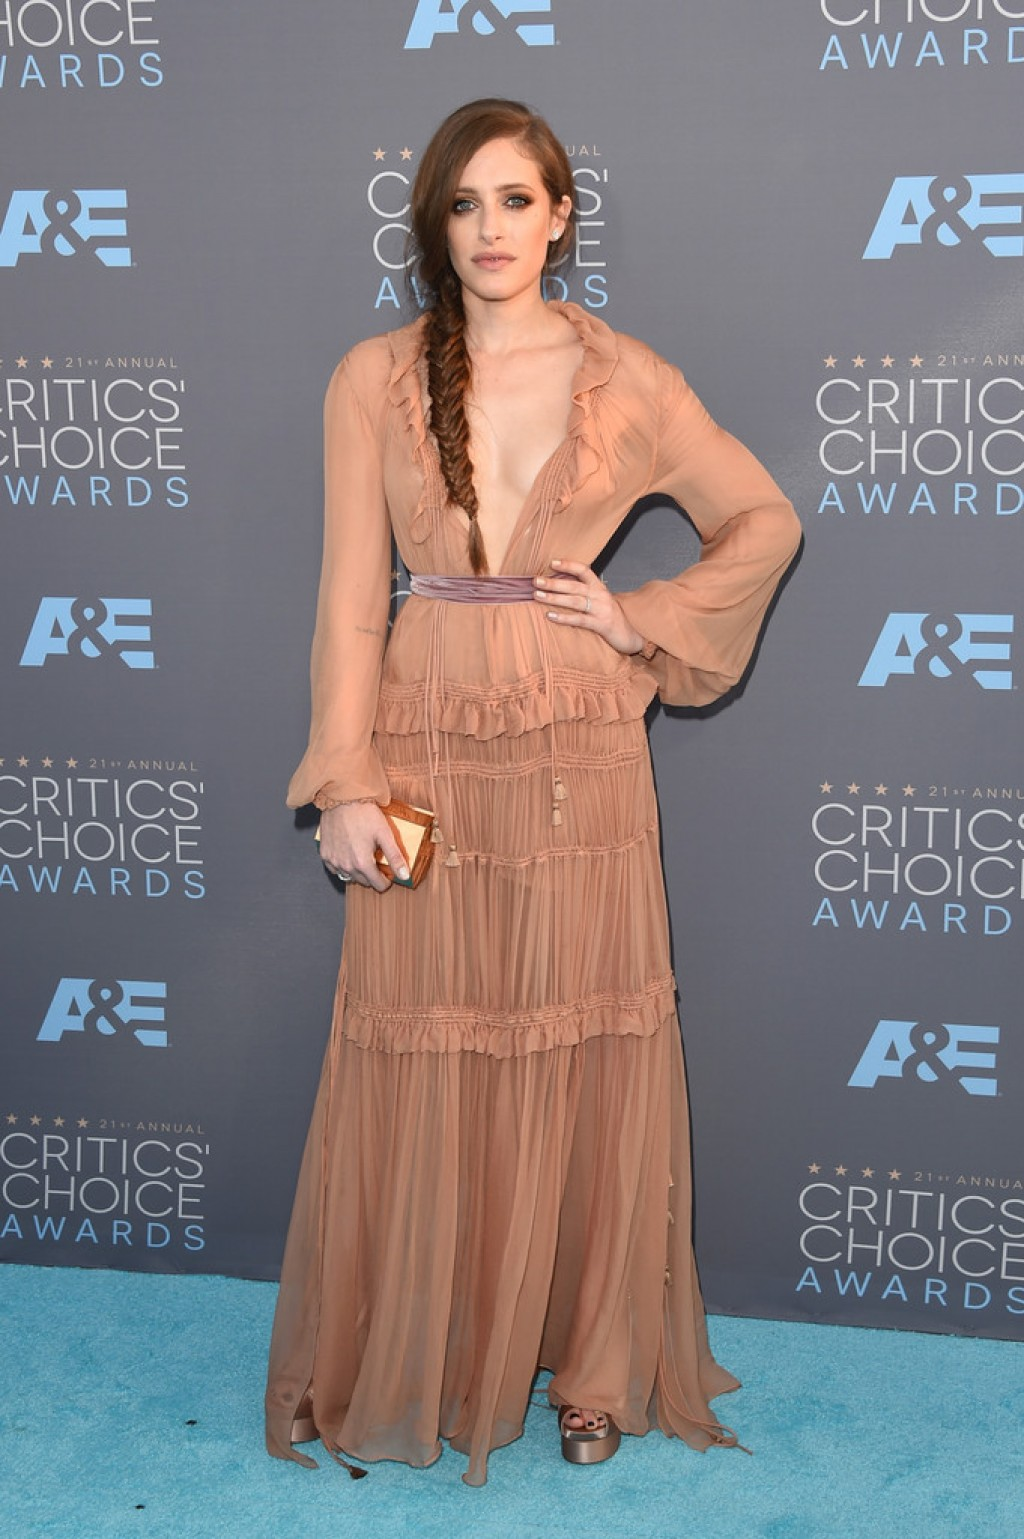 carly-chaikin-critics-choice-awards-chloe-fall-2015-dress-1024x1539